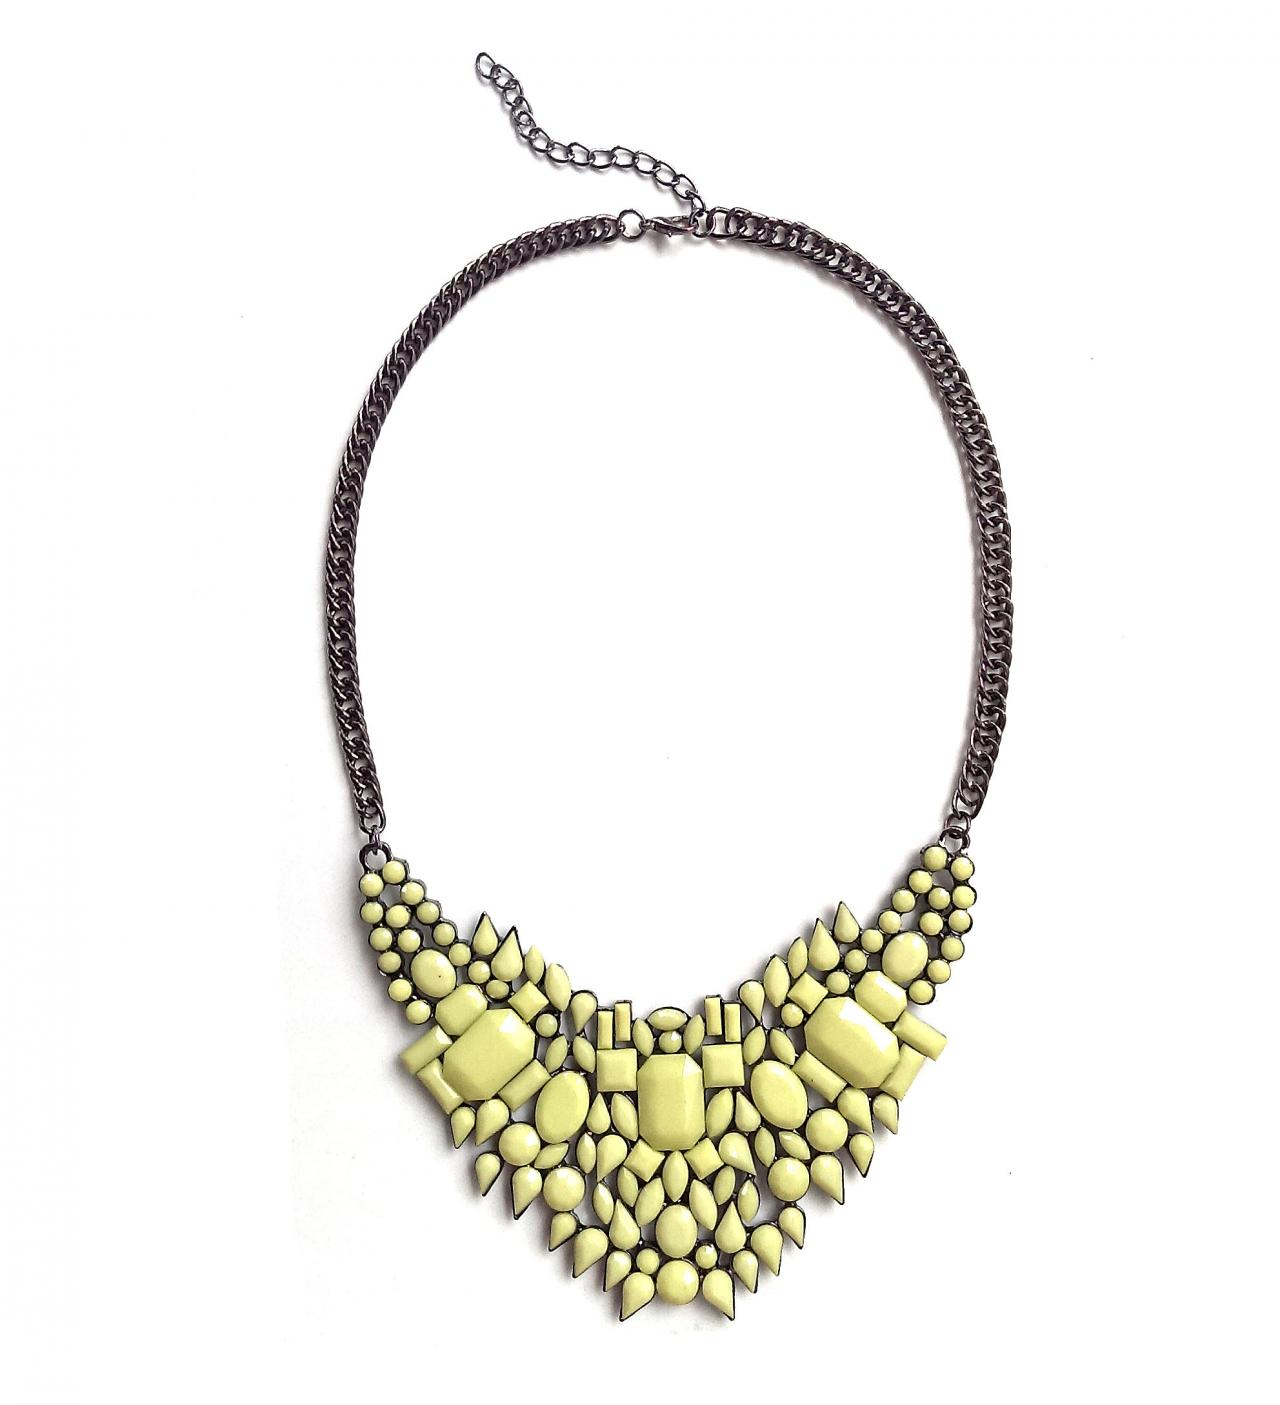 Yellow statement necklace, yellow geometric bib necklace, gift ideas under 15